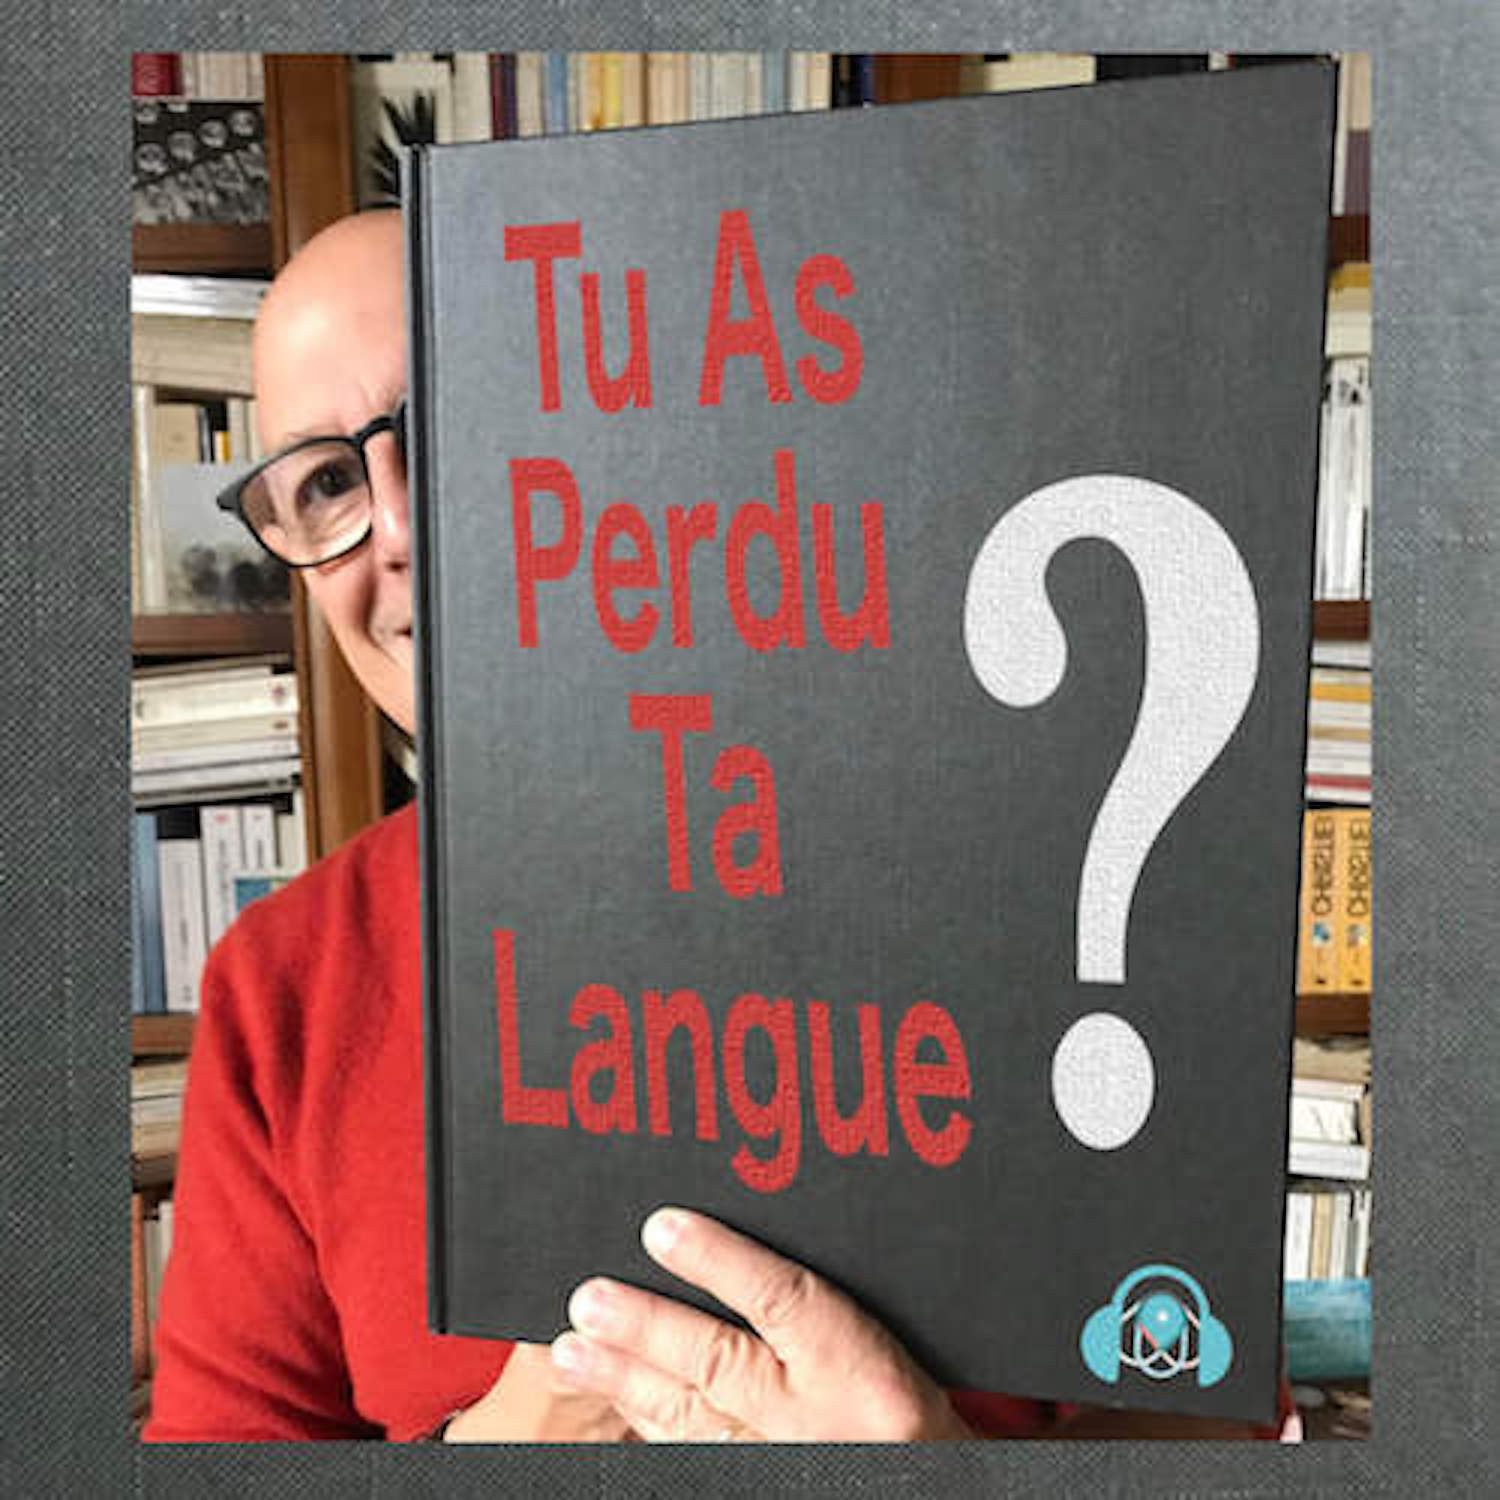 Tu as perdu ta langue - Les Contrepèteries